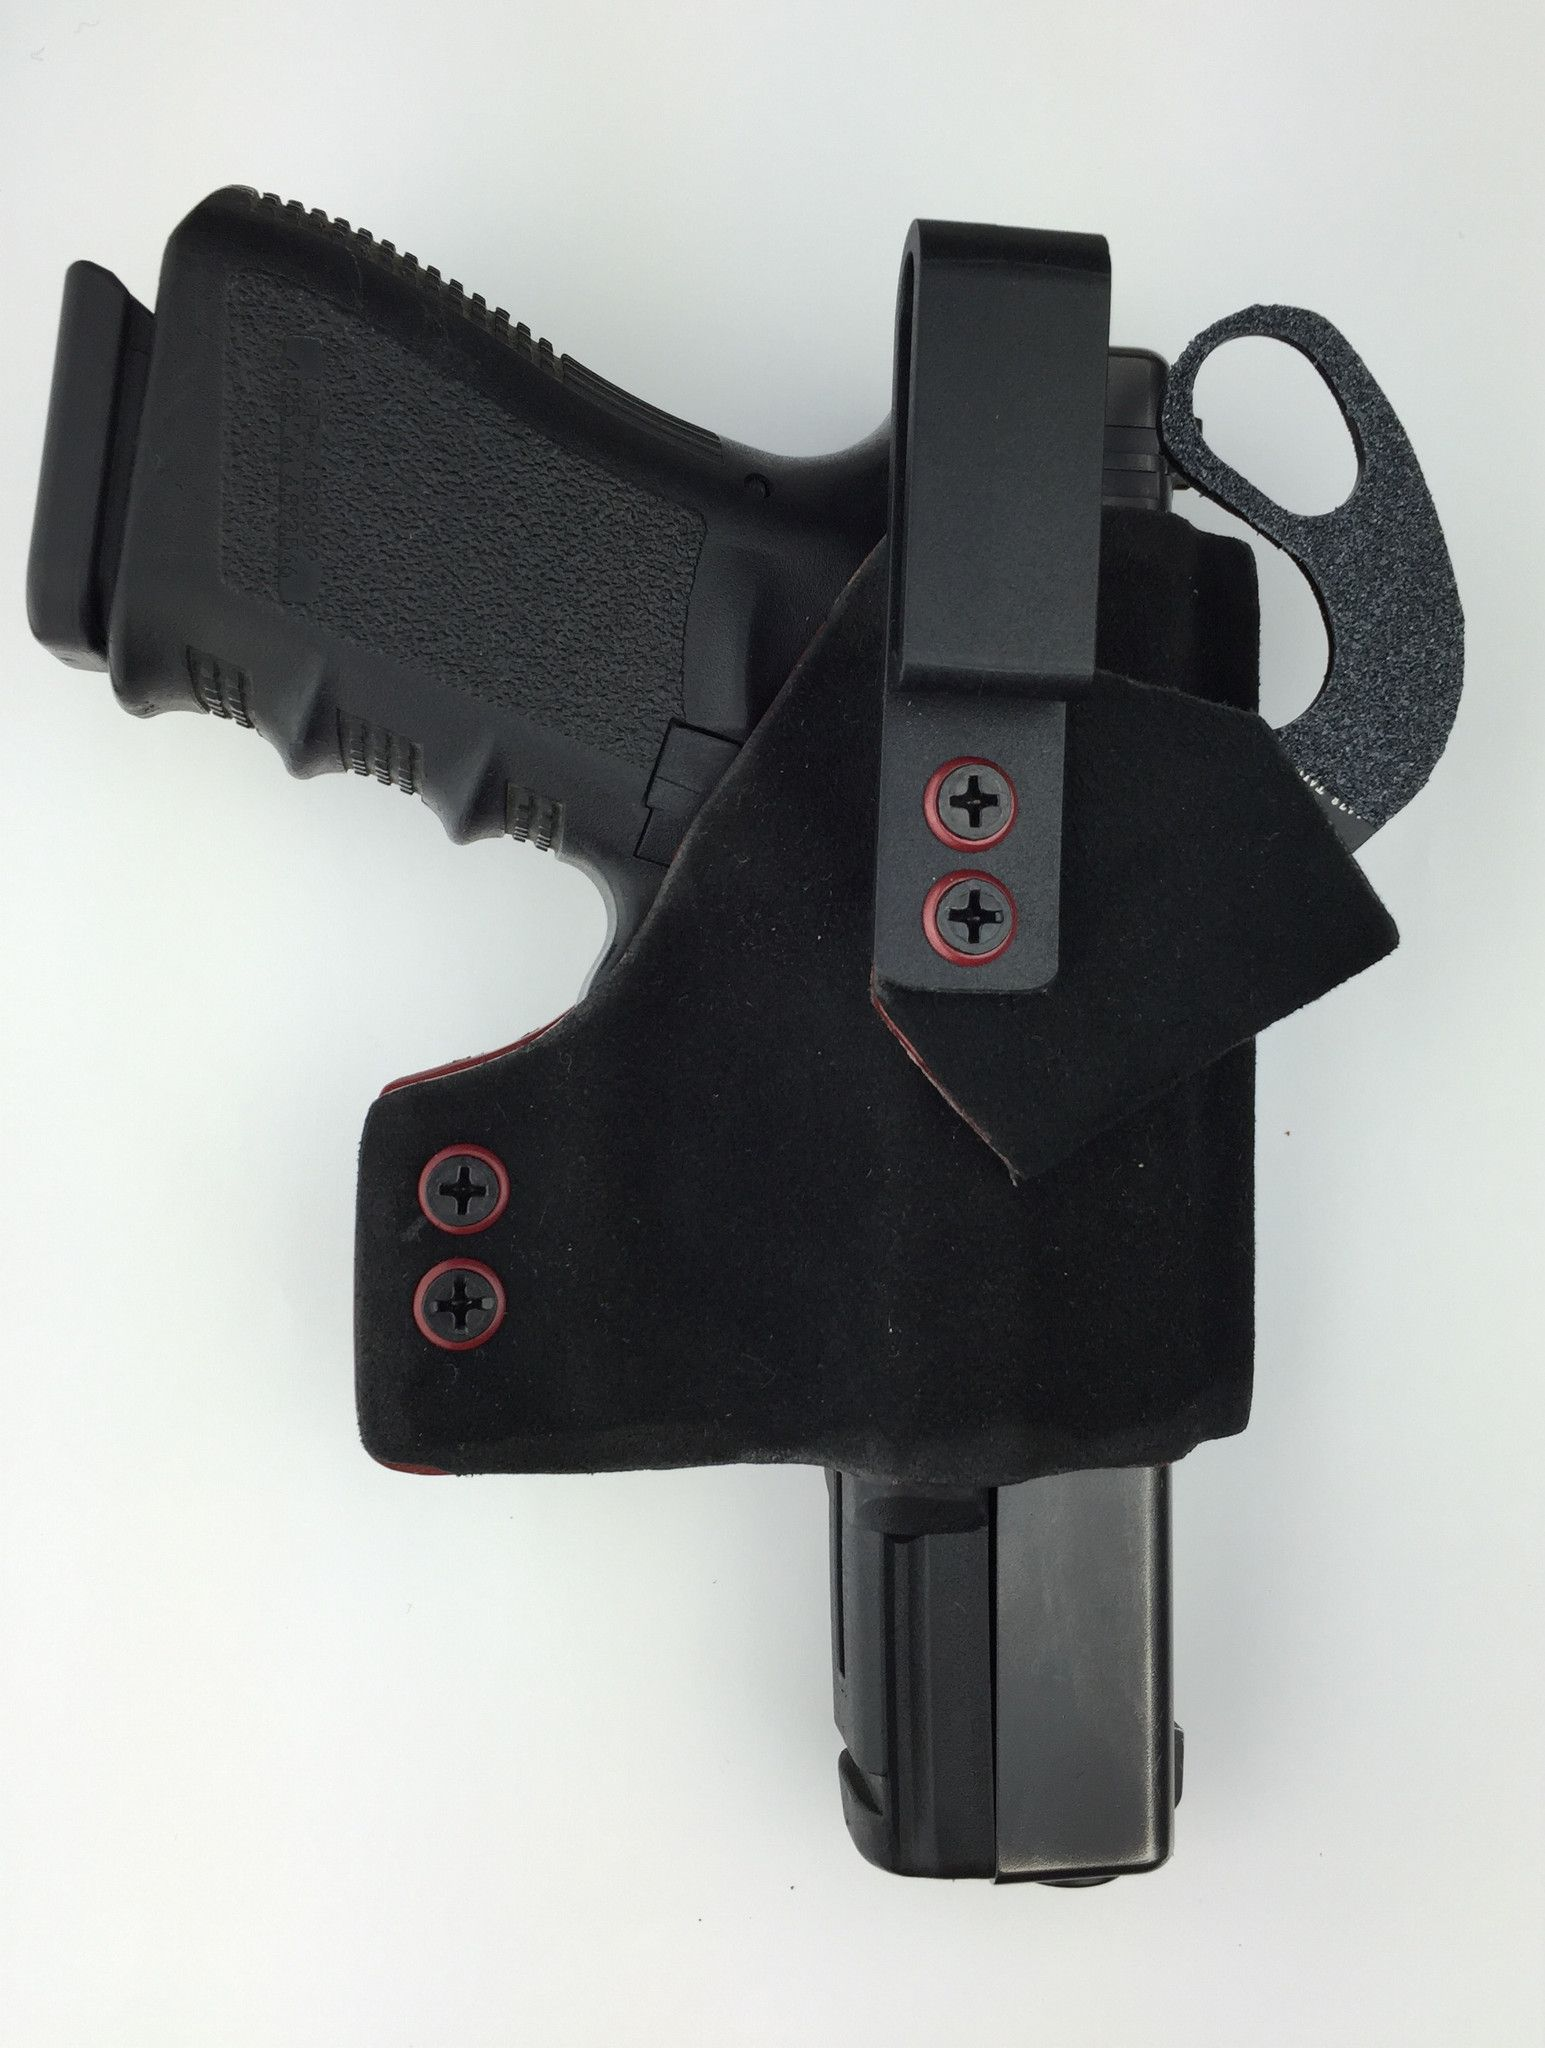 The cherries multi-fit deep concealment holster | Firearms